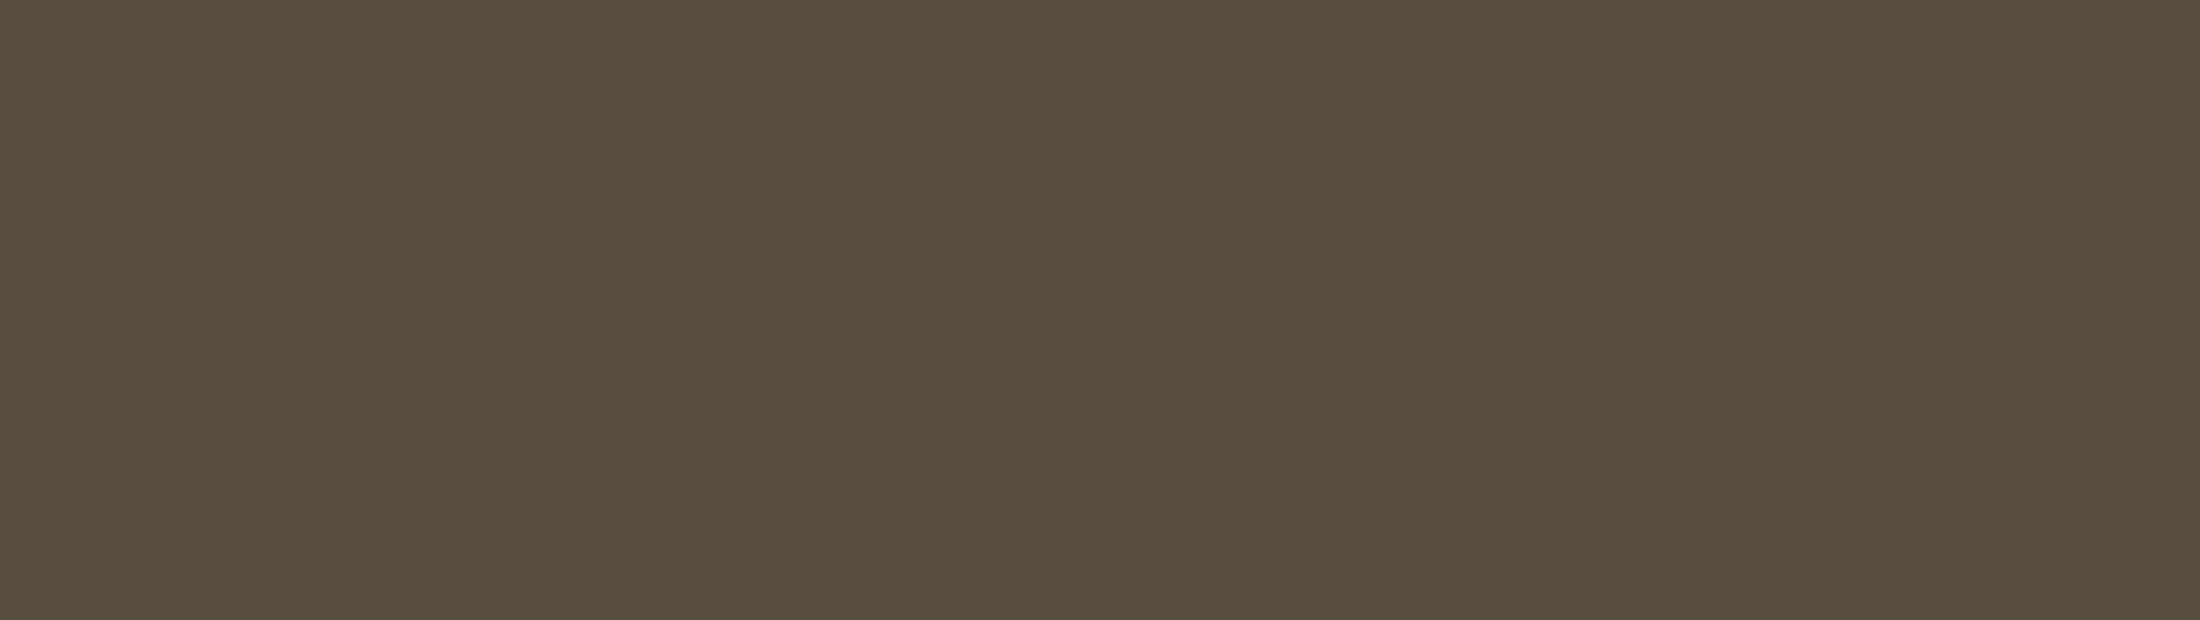 Marfa-color-brown.jpg